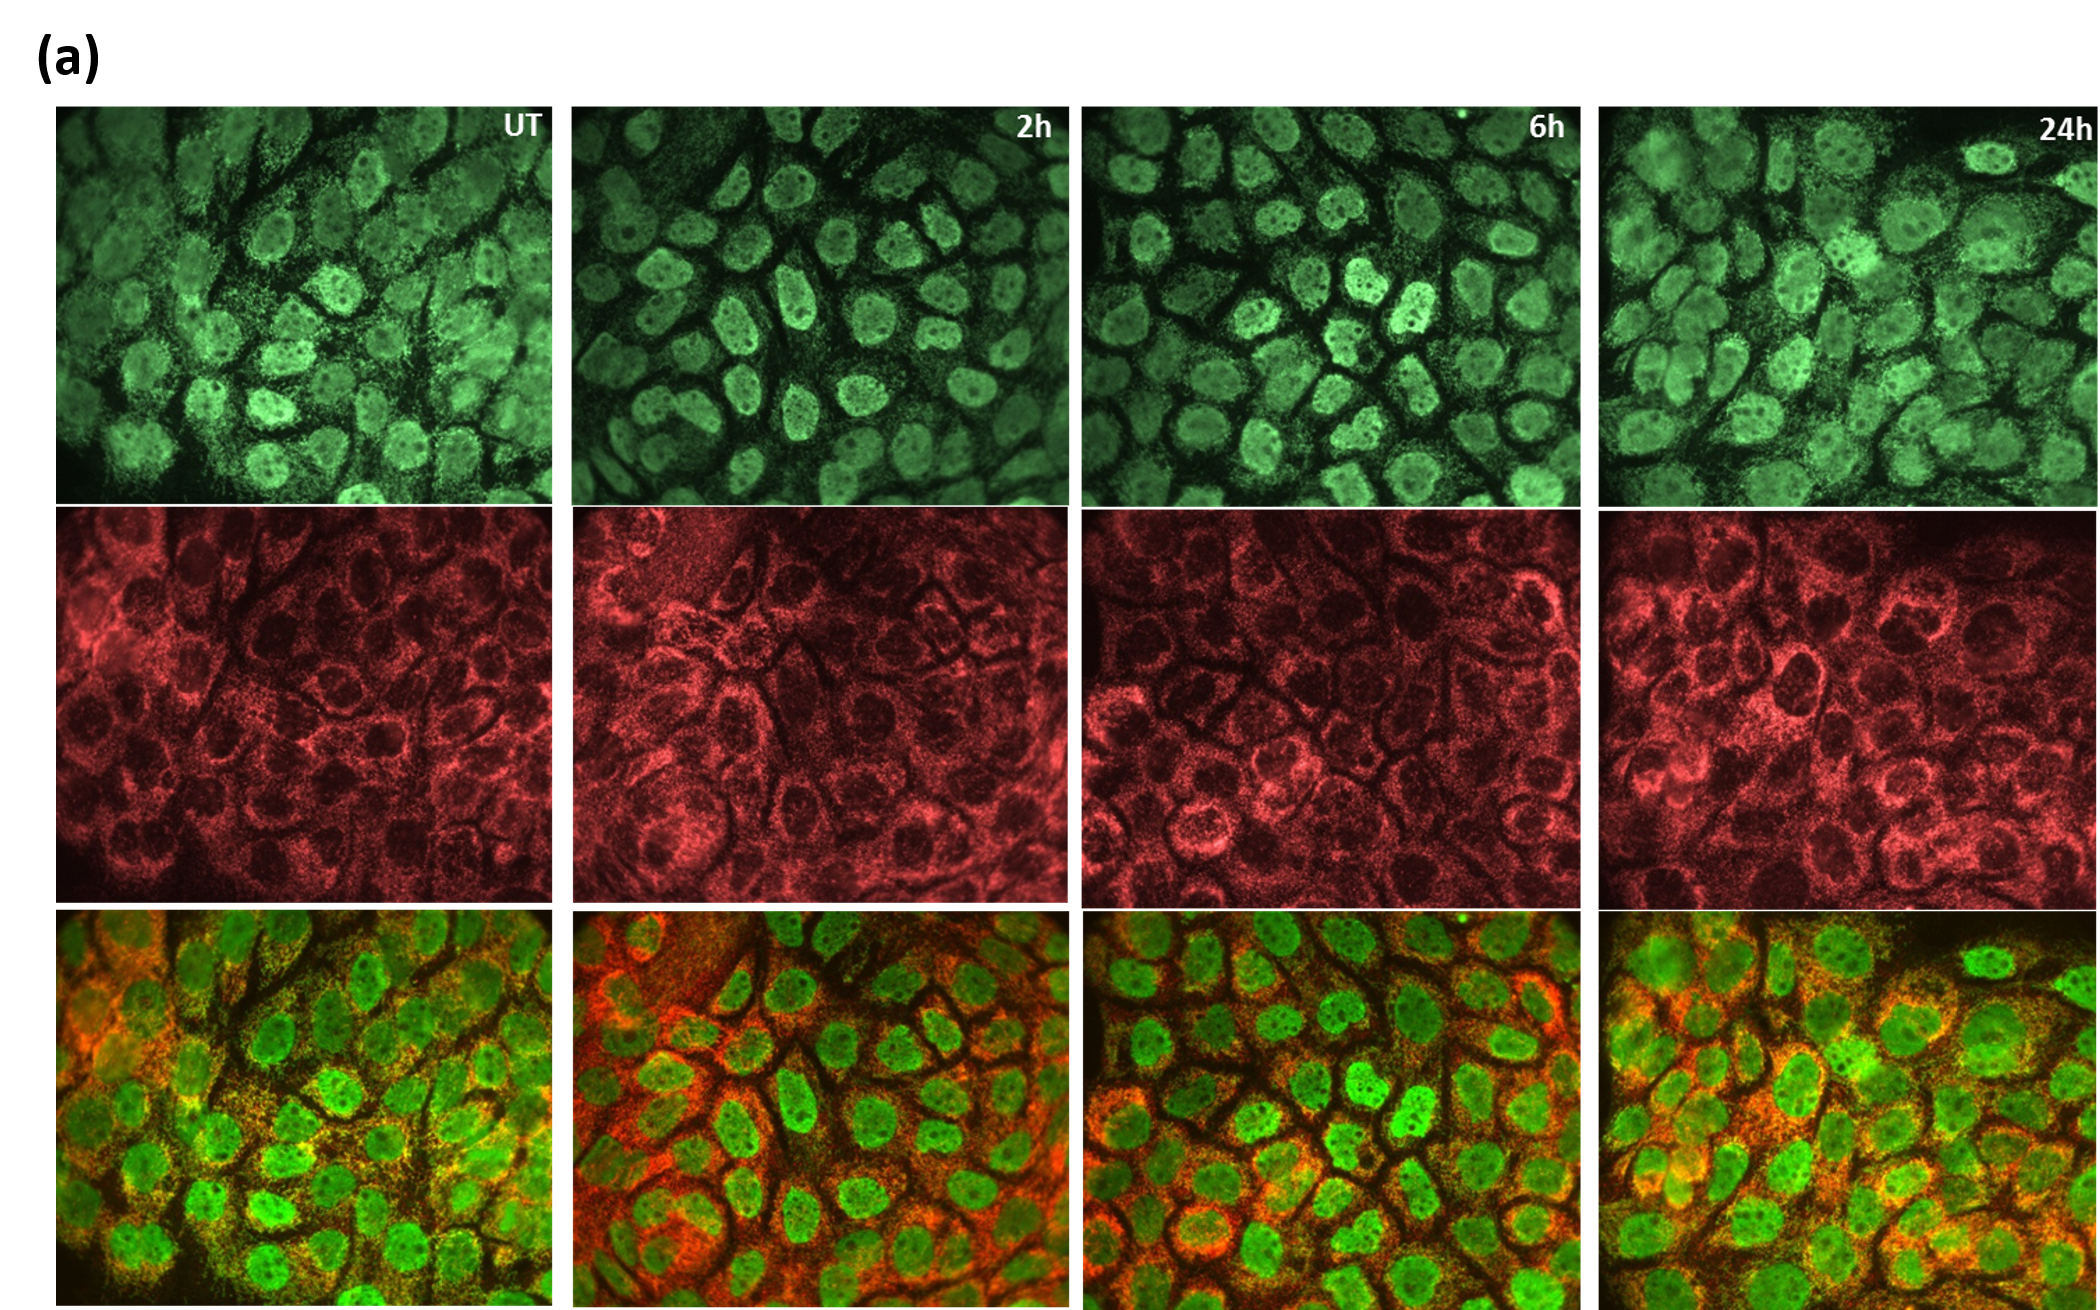 Figure 2a: A431 treated with 100uM H2O2 at different time intervals(0, 2, 6, and 24 hours) were stained as described previously. Acetylated proteins were visualized in green fluorescence. Mitochondria were visualized in red fluorescence using mitochondrial marker (anti-hexokinase1, Abcam). Merged images identified co-localization of mitochondrial and acetylation signals. The results show that AAC02 detects dynamics changes of mitochondrial acetylation in A431 cells with H2O2  treatment.